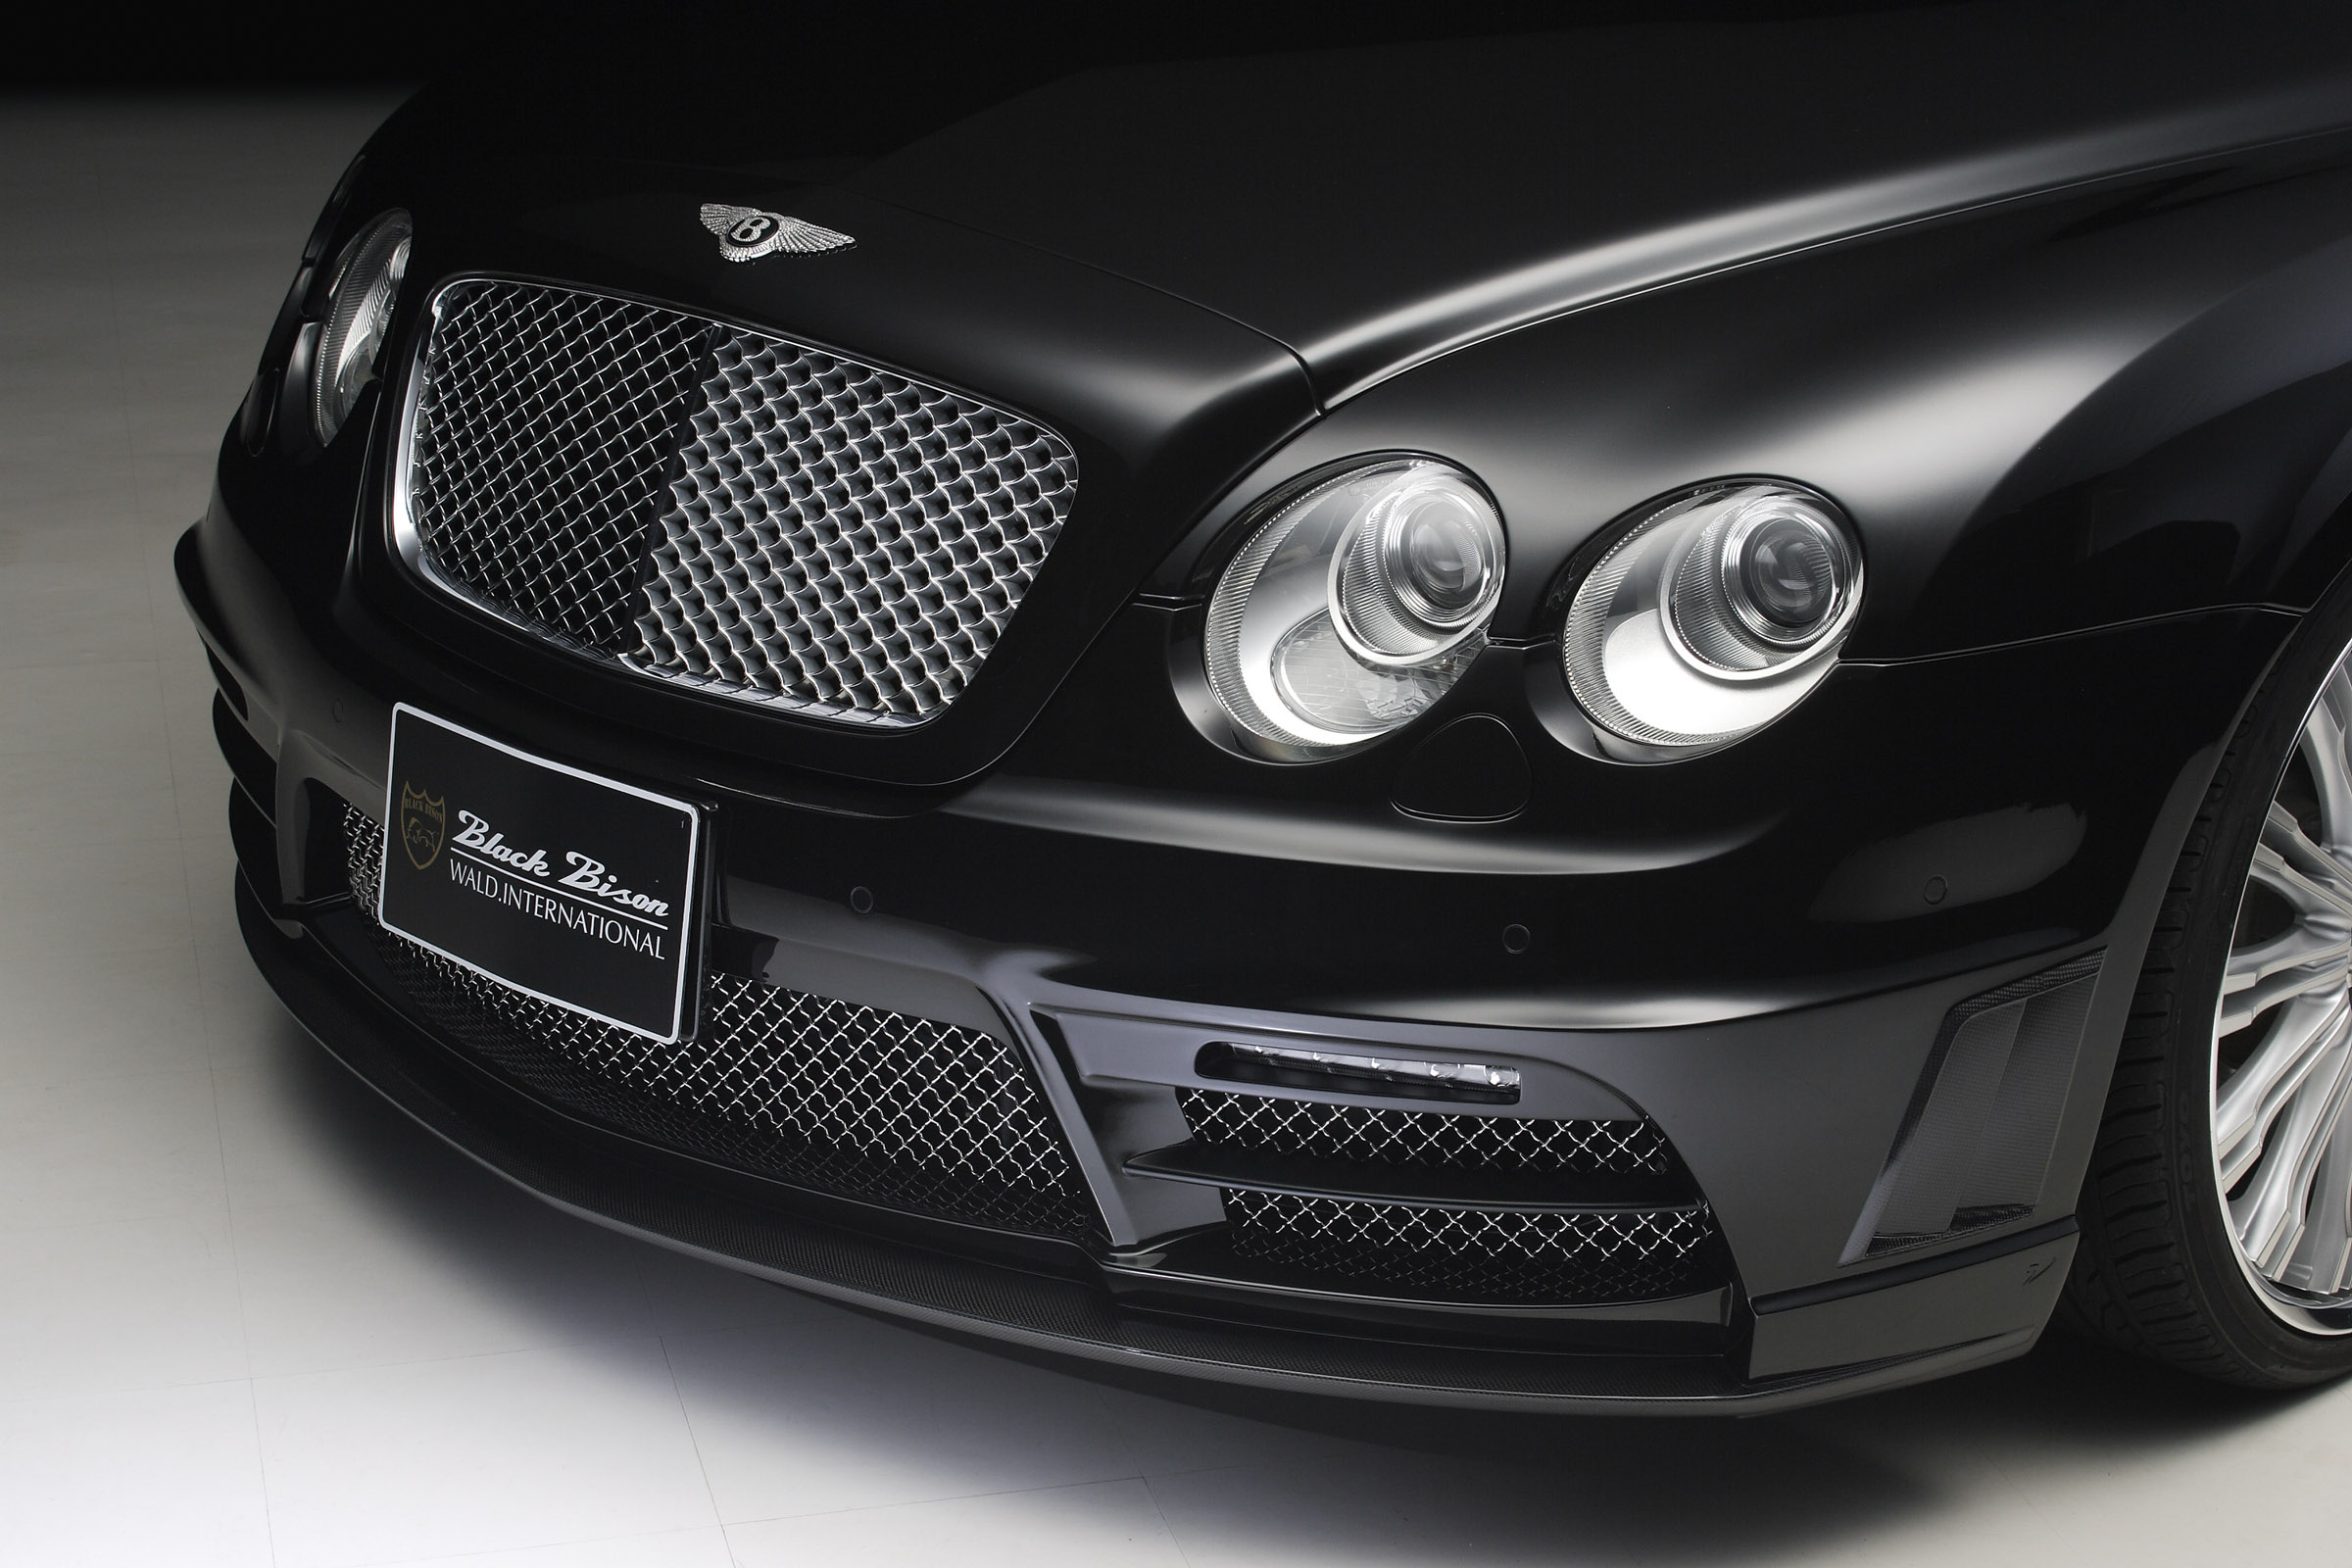 2008 wald bentley continental gt black bison images hd cars index of imgwald bentley continental flying spur black bison edition wald bentley continental flying spur black vanachro Images